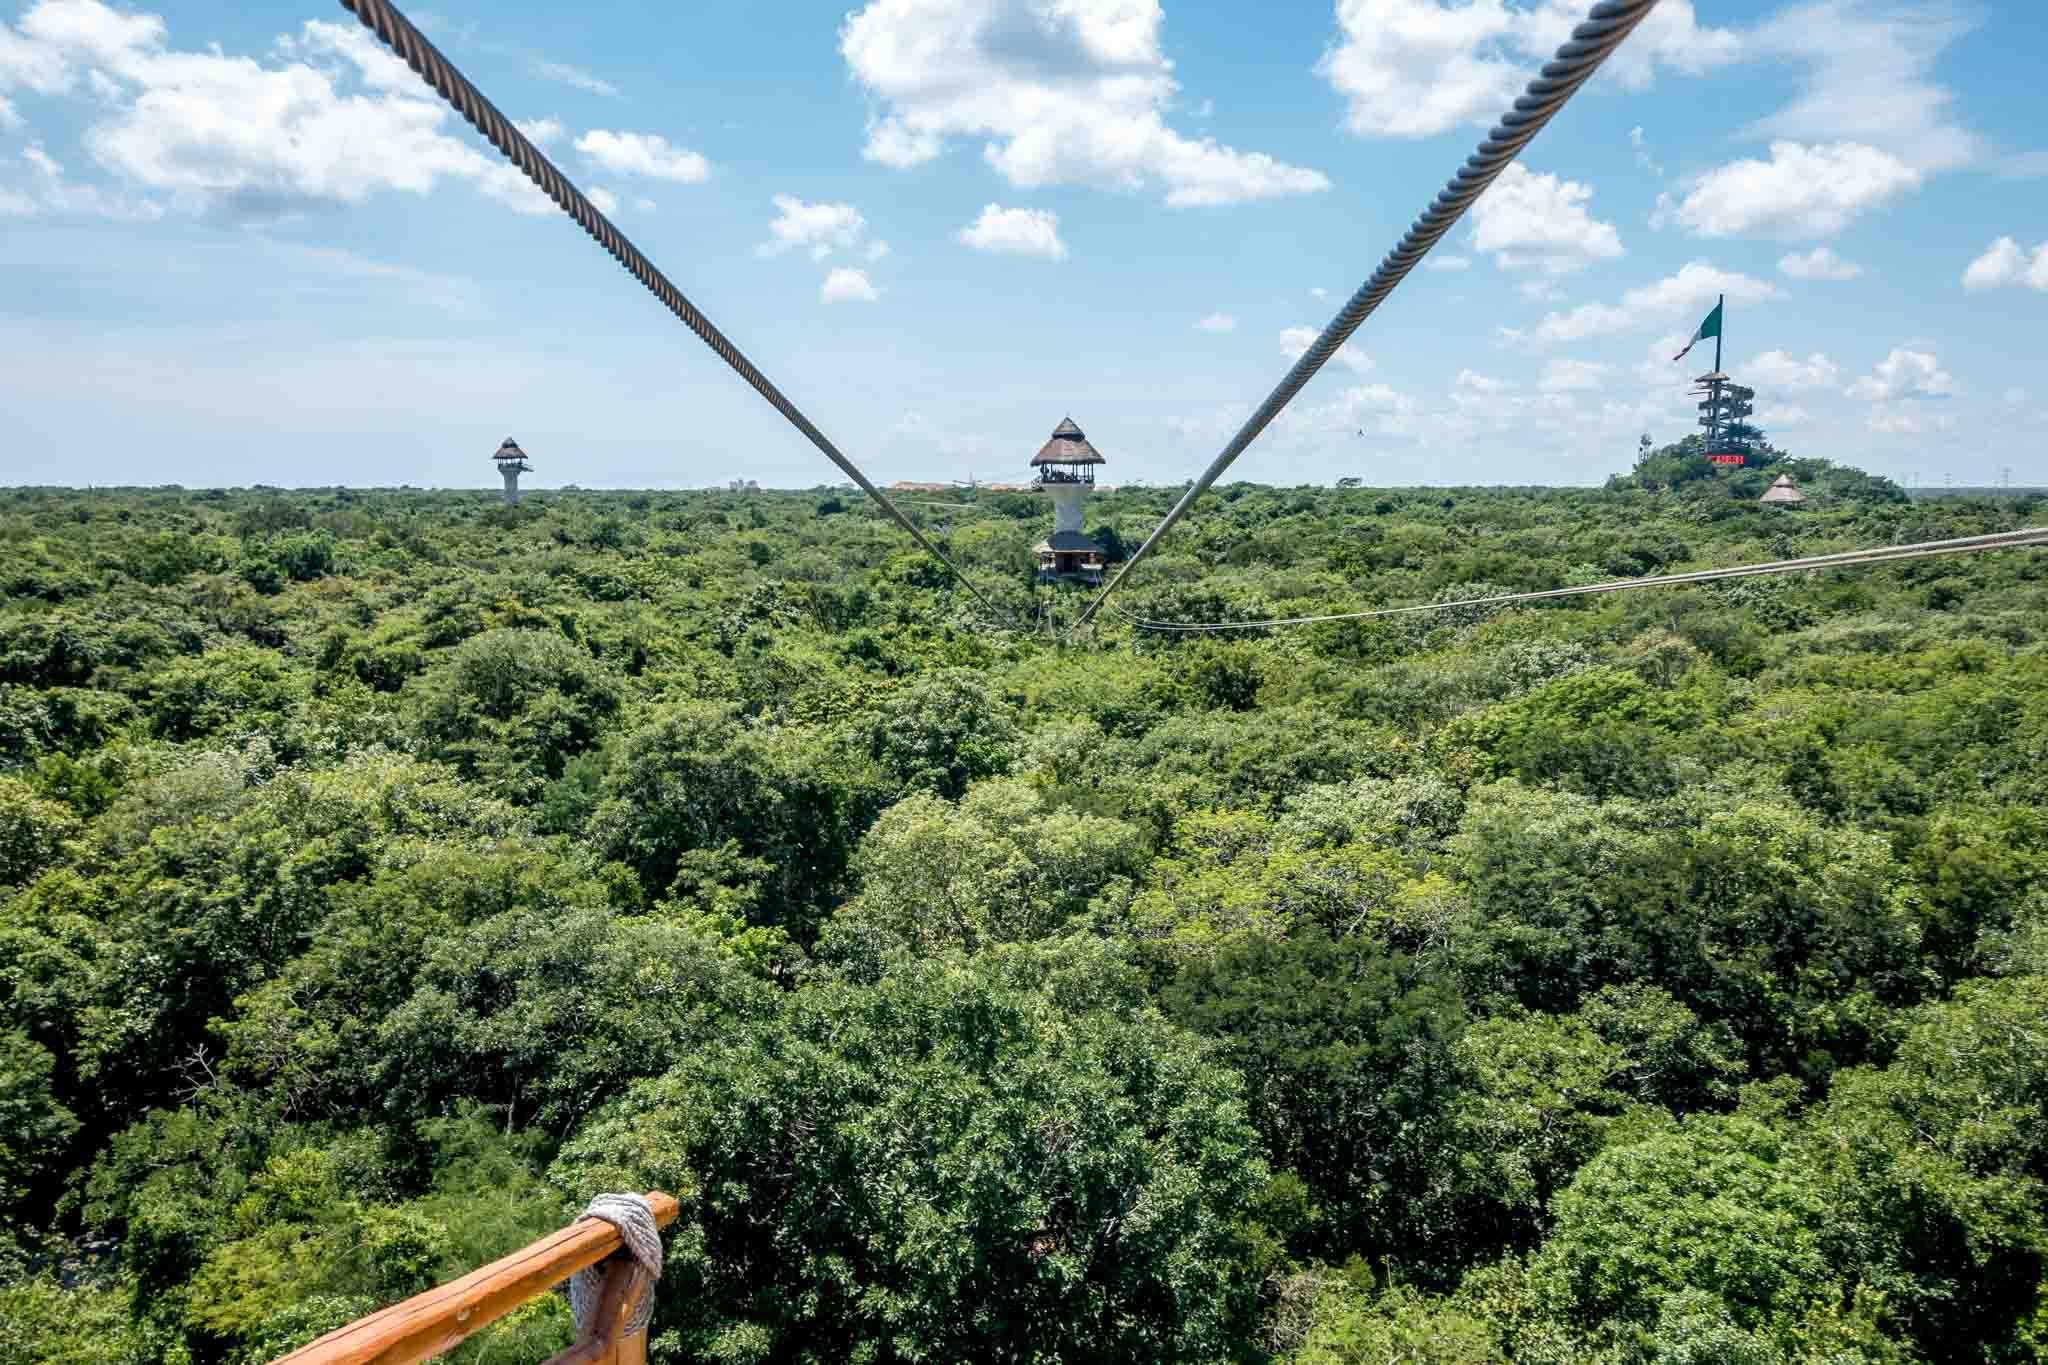 Zip lines above a tree canopy